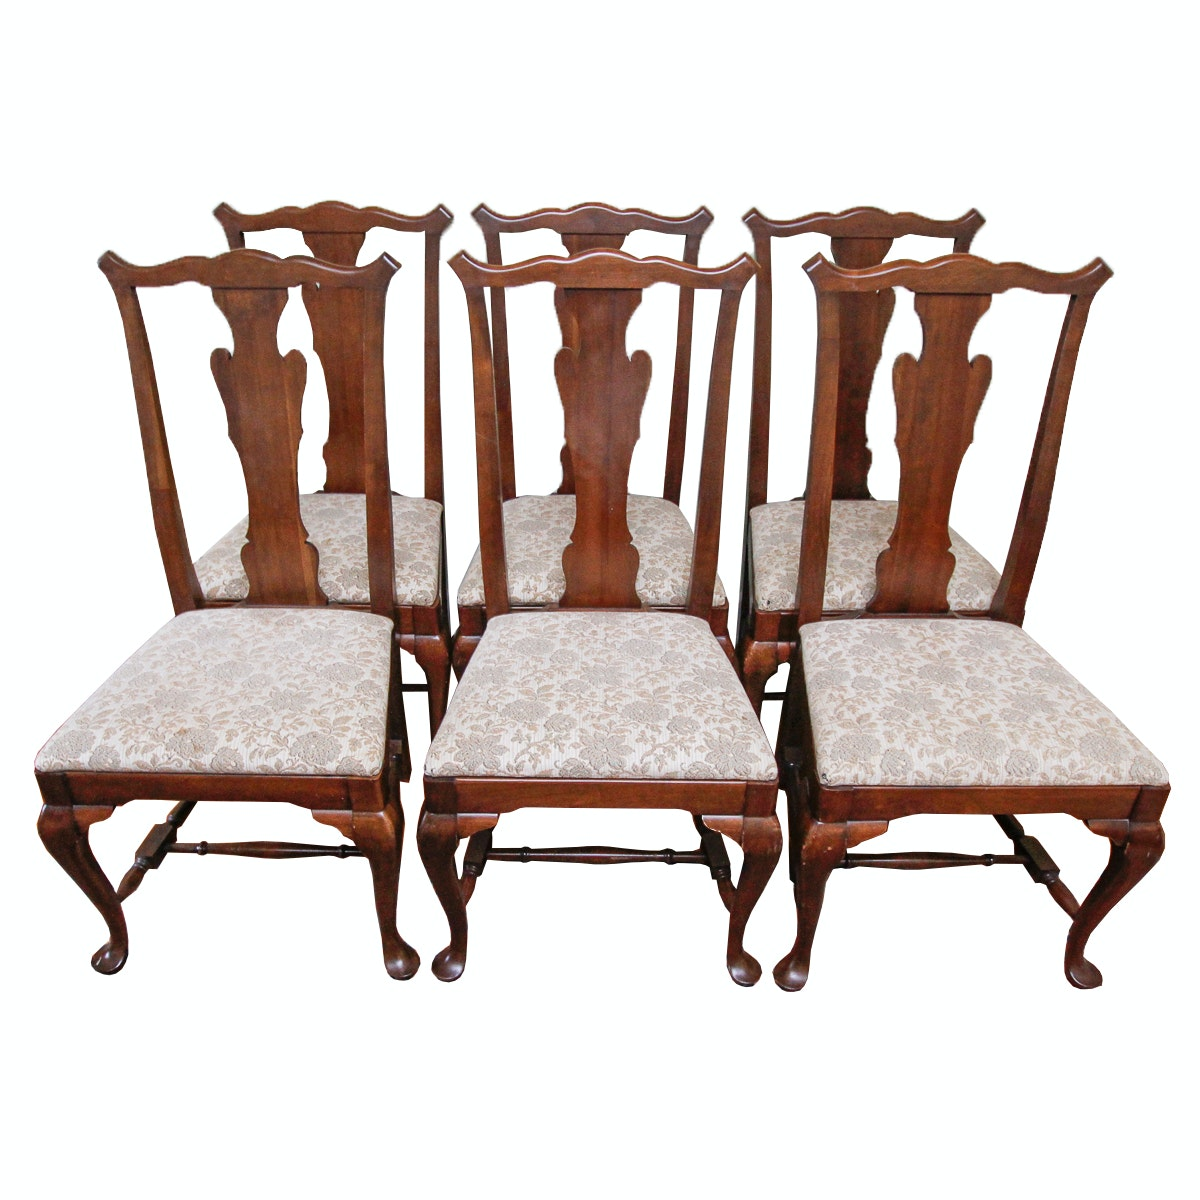 Set of Vintage Queen Anne Style Dining Chairs by Herald Furniture